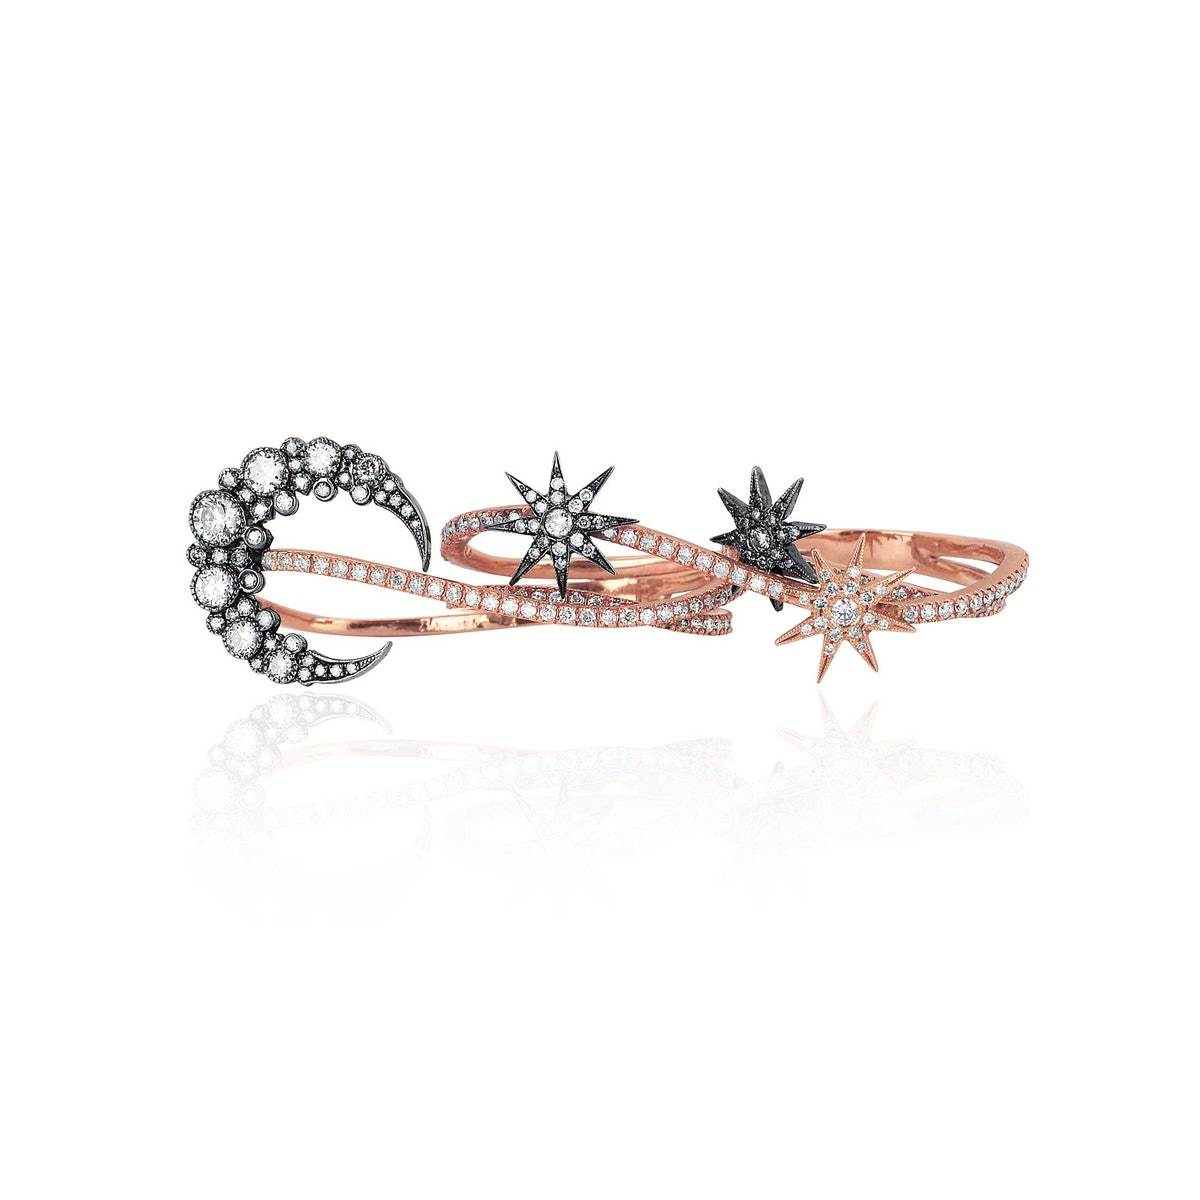 Colette 18k rose and blackened gold and diamond ring